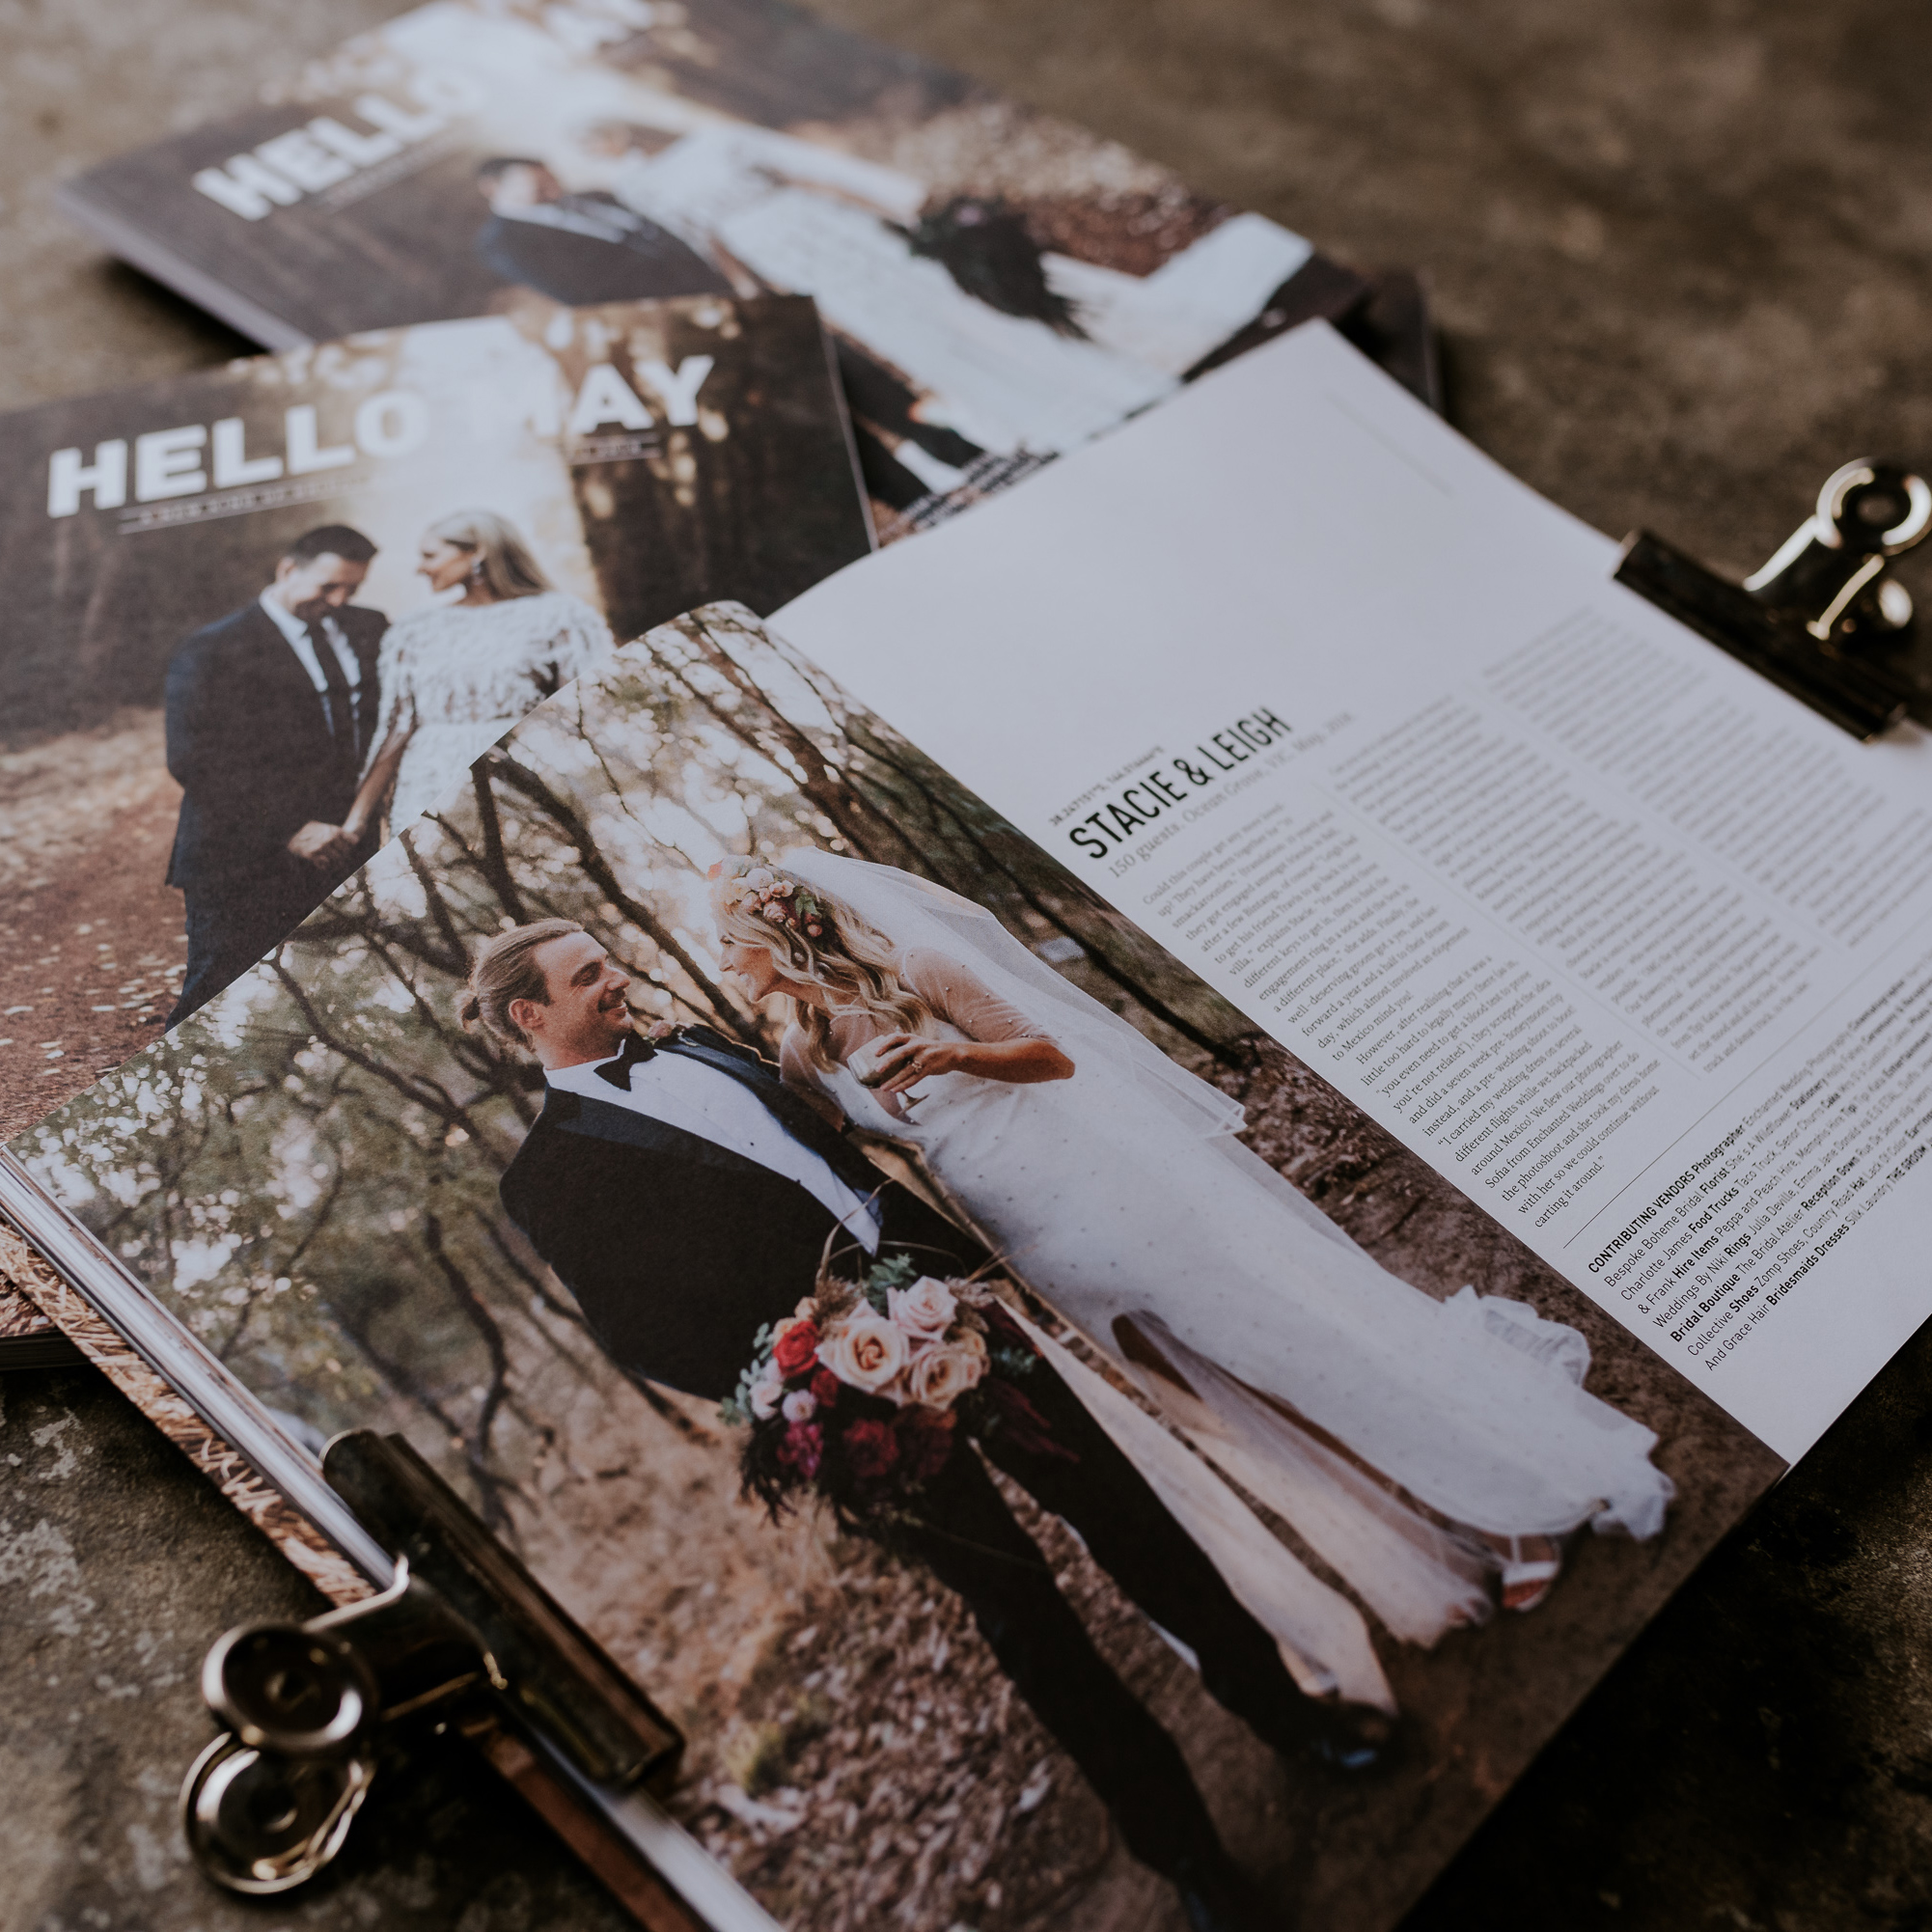 See Stacie and Liegh's WedFest in  Hello May Issue 22 ! If your looking for some wed-spiration these two killed it!  Captured by the incredible  Enchanted Wedding Photography  team! Magazine photo by  Scott Surplice Photography .